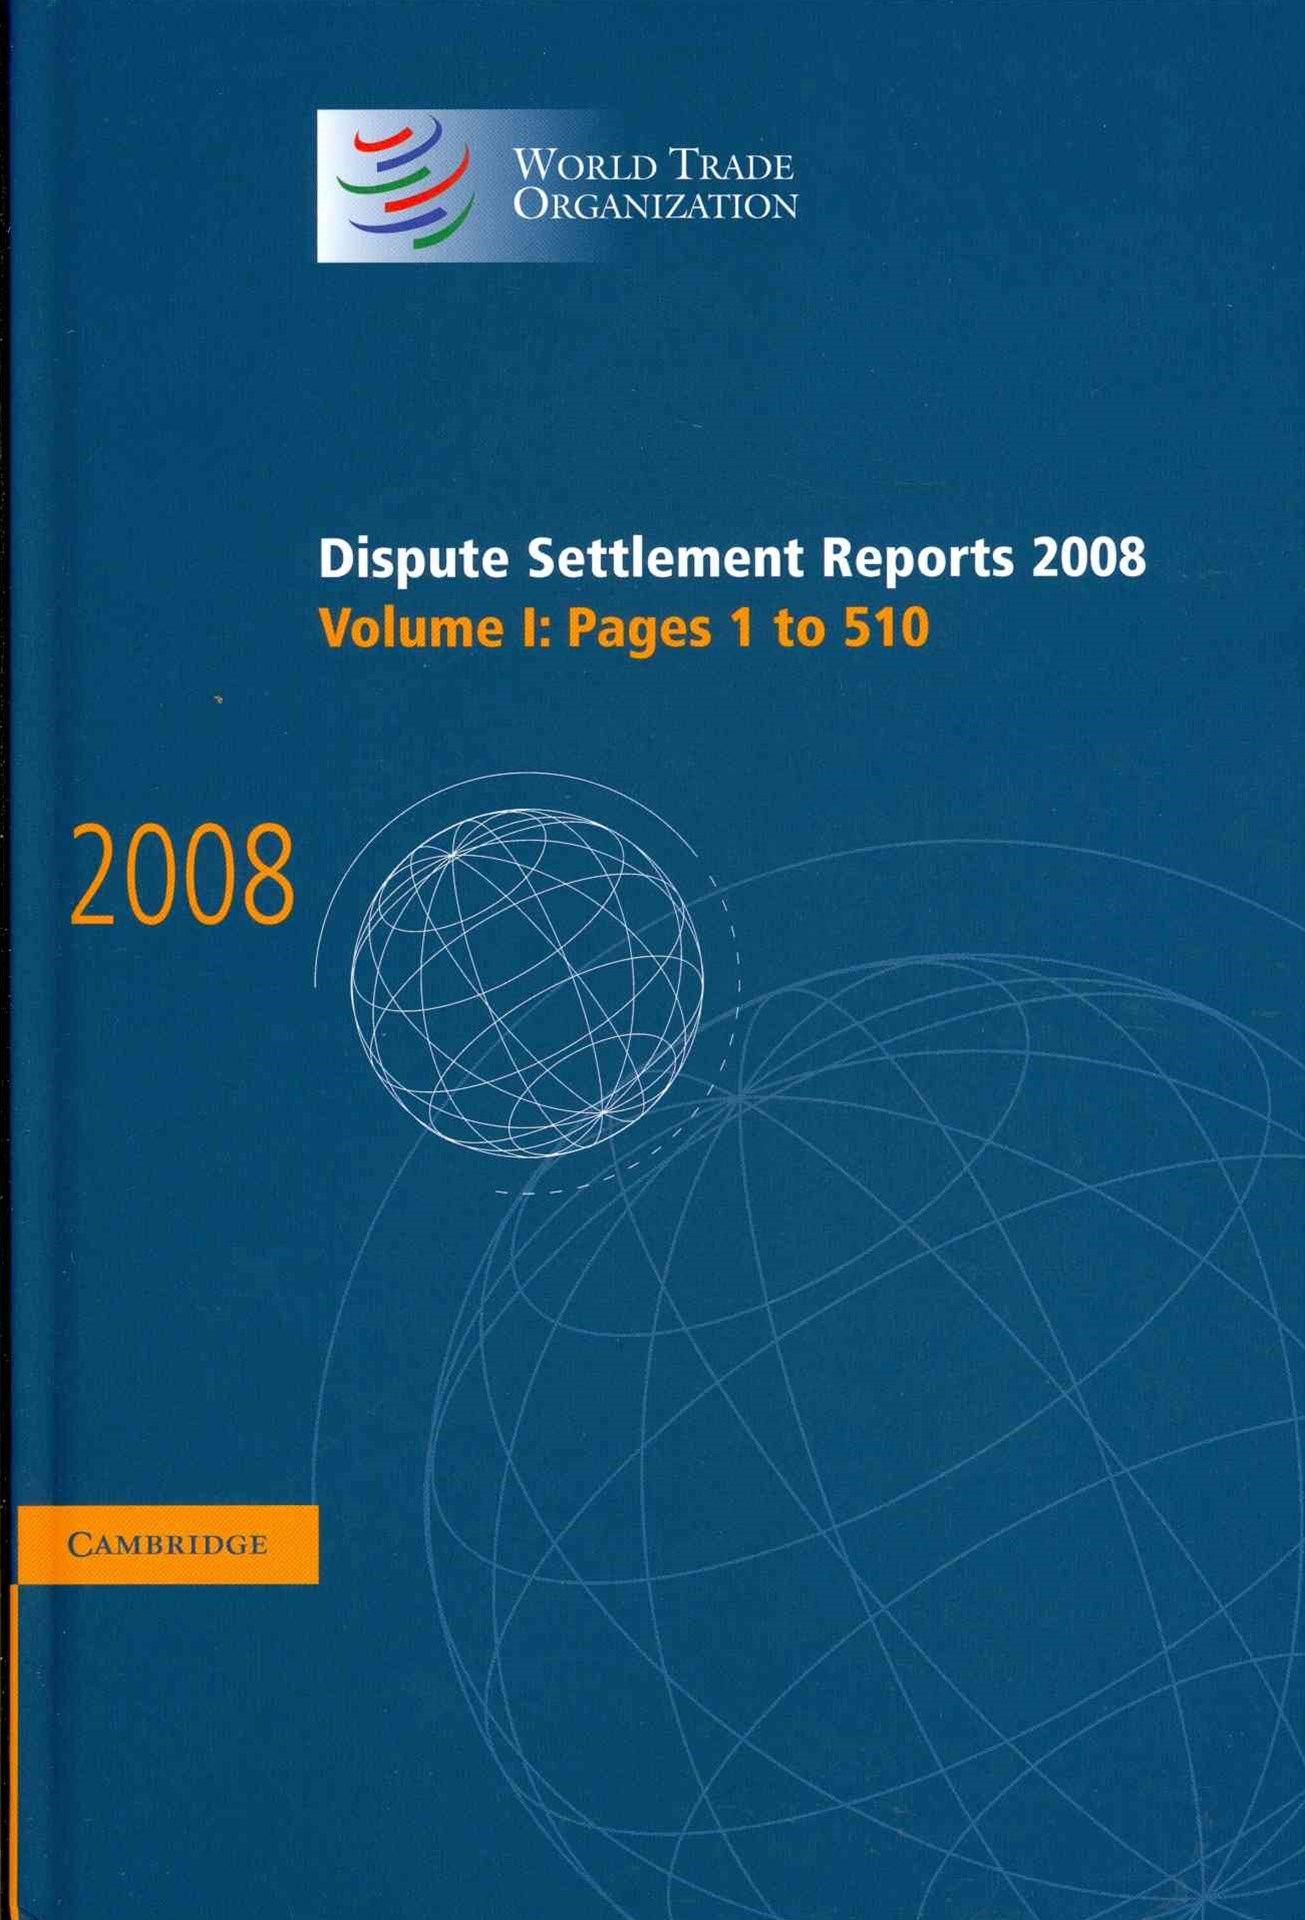 Dispute Settlement Reports 2008: Volume 1, Pages 1-510